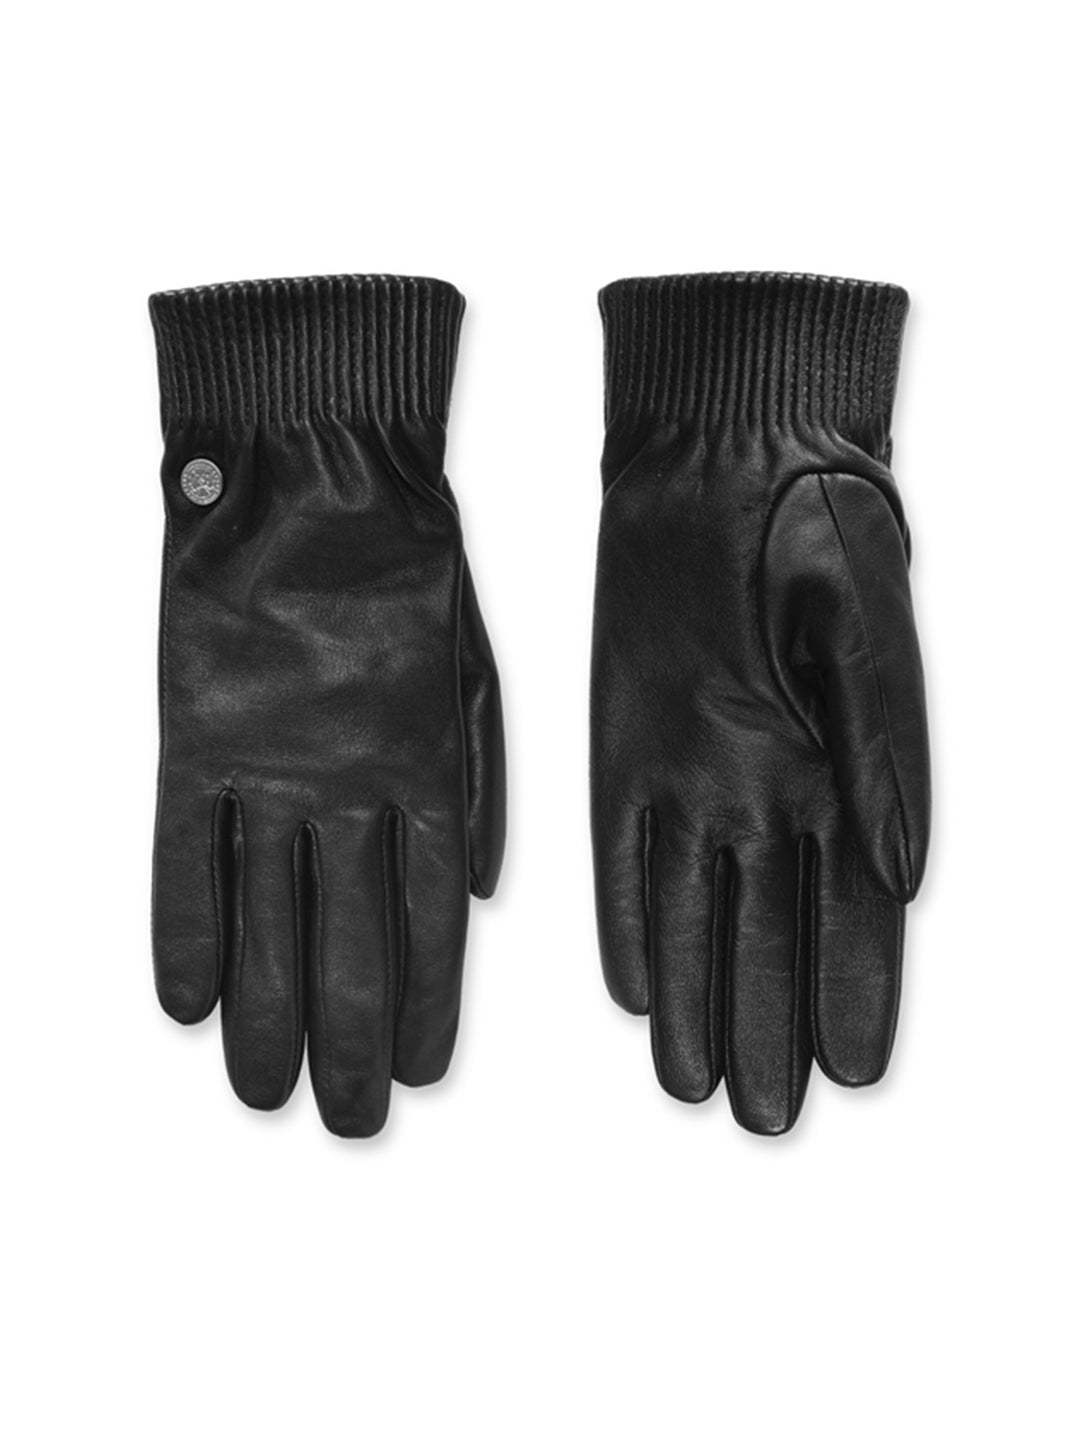 Leather Rib Glove-Canada Goose-Over the Rainbow